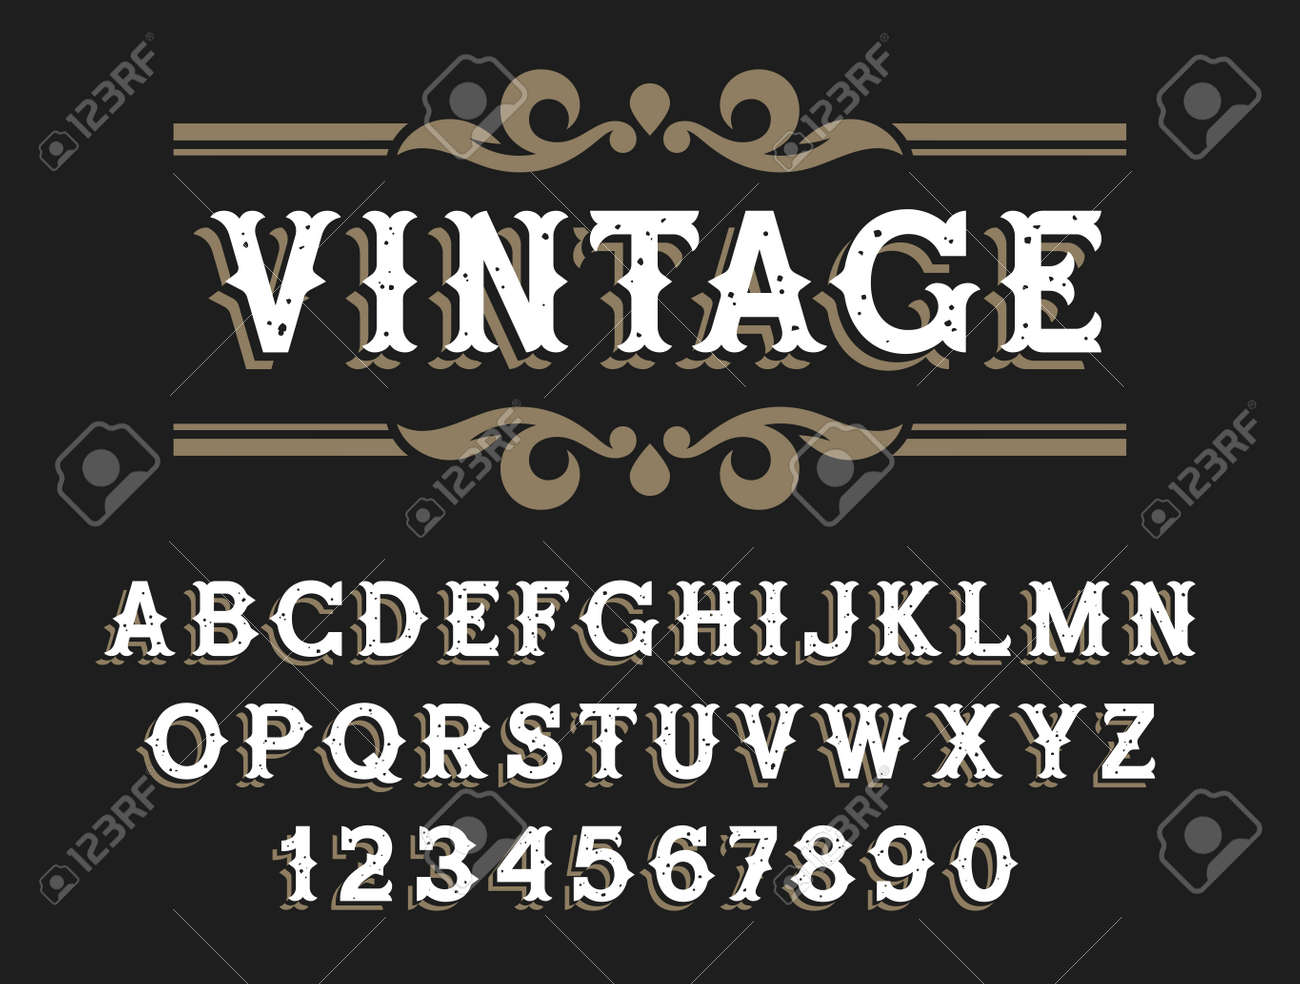 Vintage font in Wild West style. Handmade oldstyle typeface with grunge texture for signboards, labels and posters - 155779057